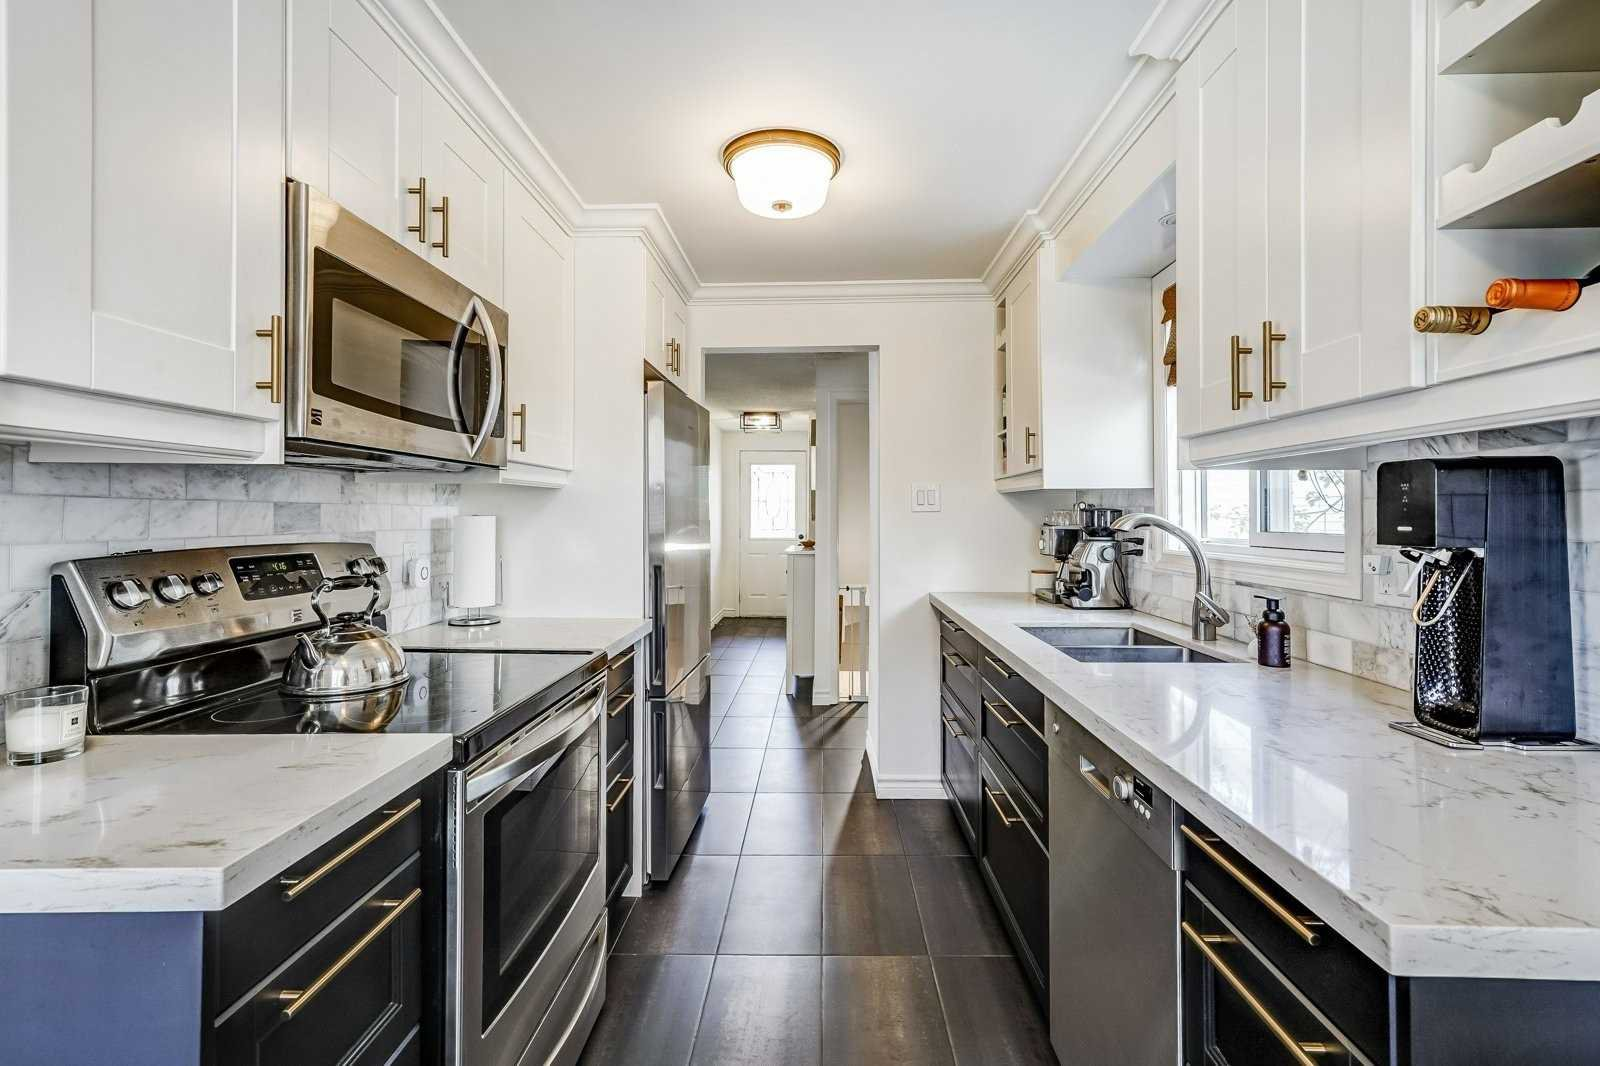 Main Photo: Hemingway Crescent in Barrie: Letitia Heights House for lease Steven & Marie Commisso Vaughan Real Estate Vaughan Condos